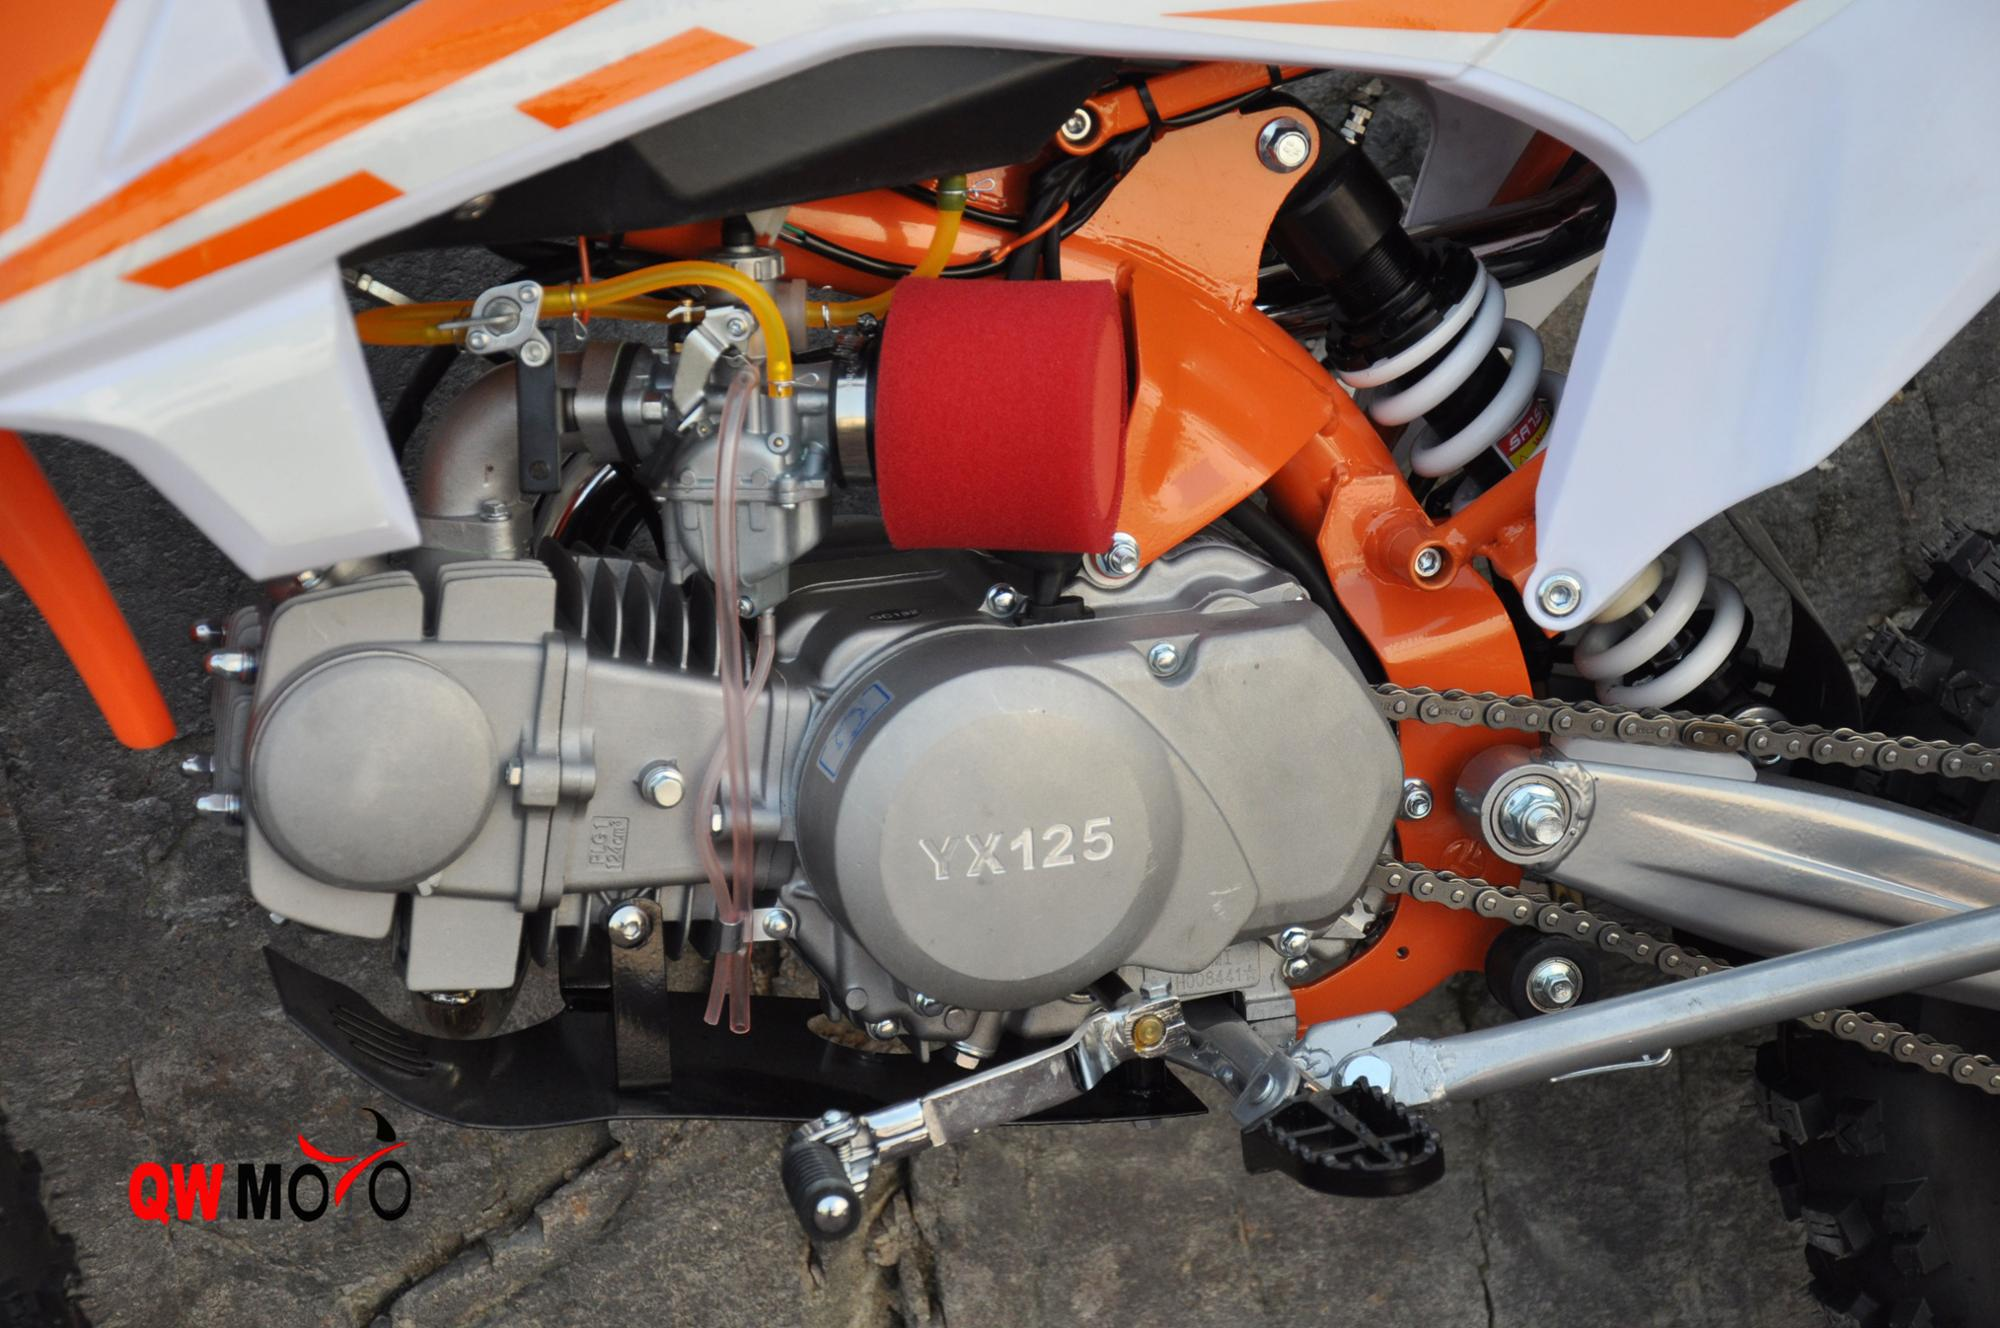 New High quality 125cc 4 stroke oil cooled engine kick start 125cc motorcycle